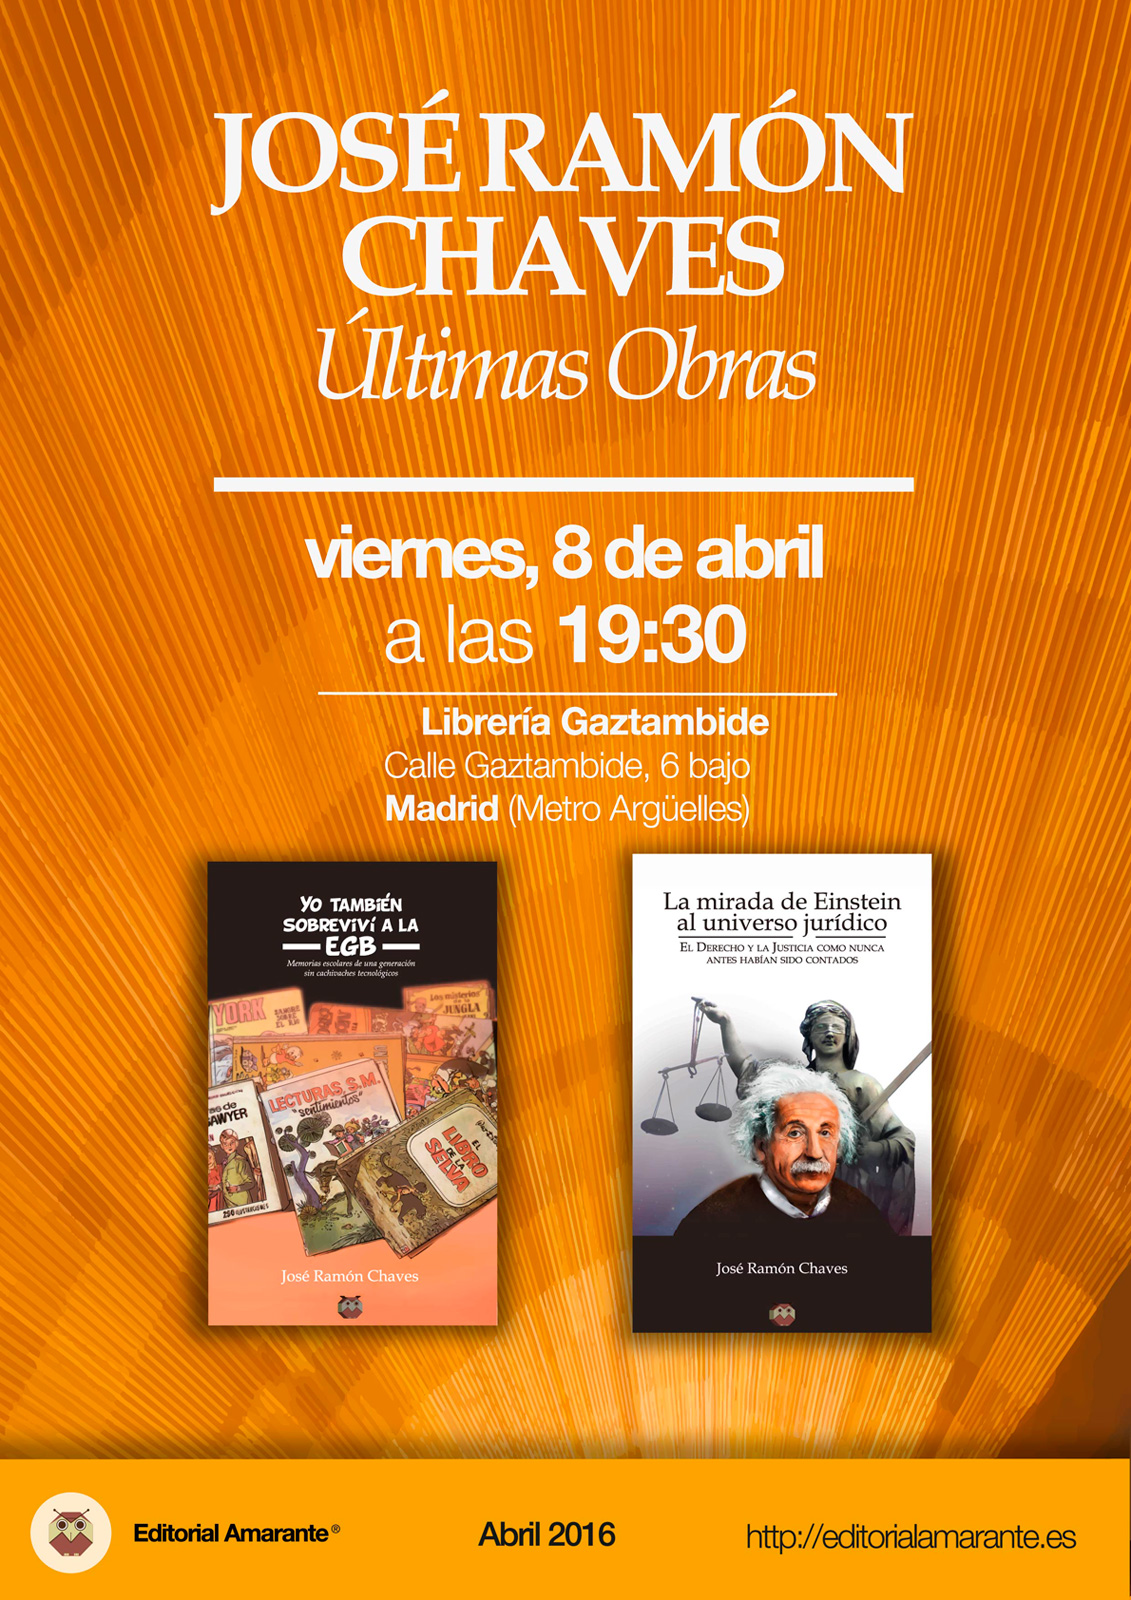 José Ramón Chaves - Editorial Amarante - Librería Gaztambide - 8 abril 2016